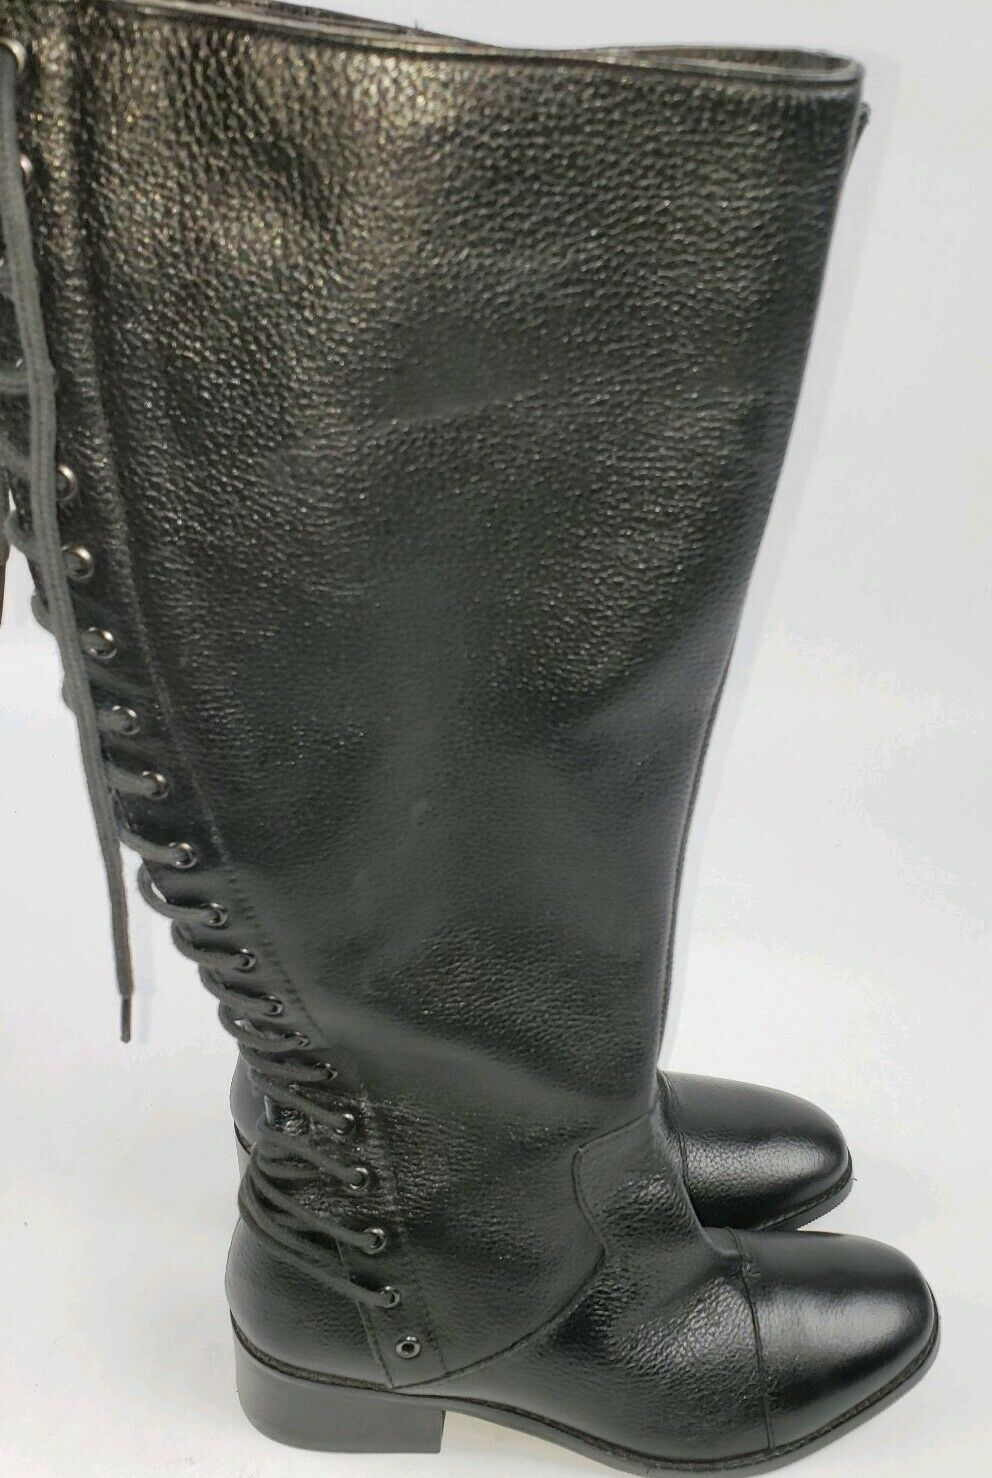 MADE IN  INDIA  nero  LEATHER LEATHER LEATHER UPPER  donna  stivali Dimensione 7  REAR BACK LACE 404840